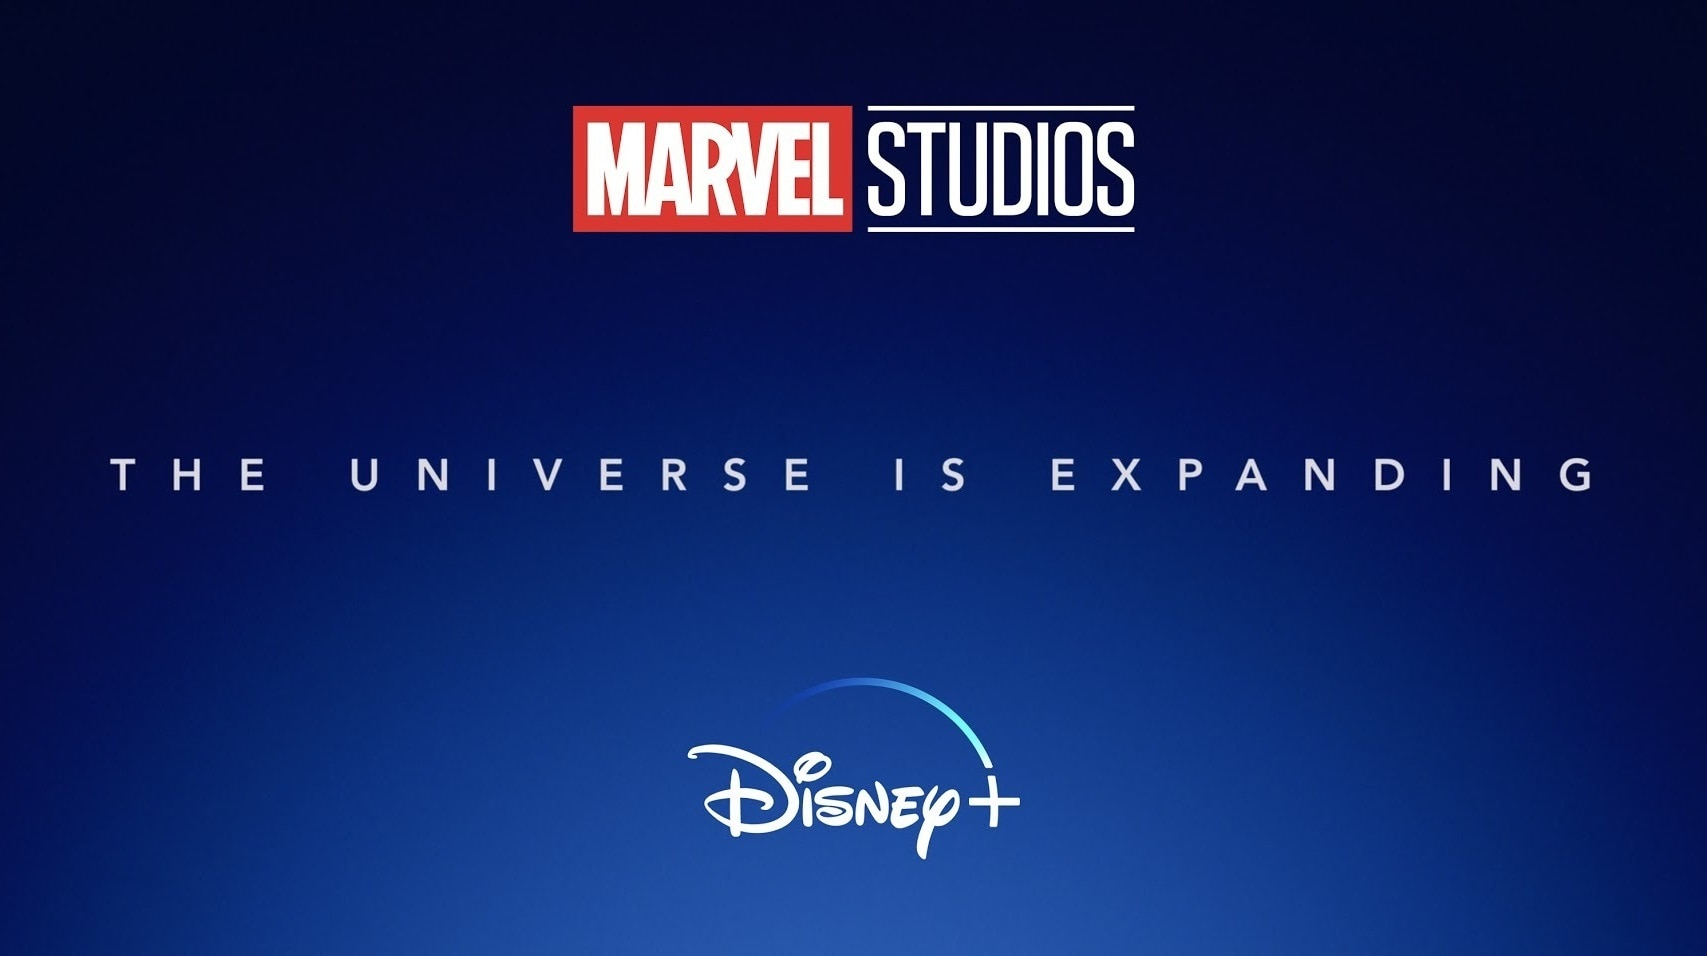 The Universe is expanding | Disney+